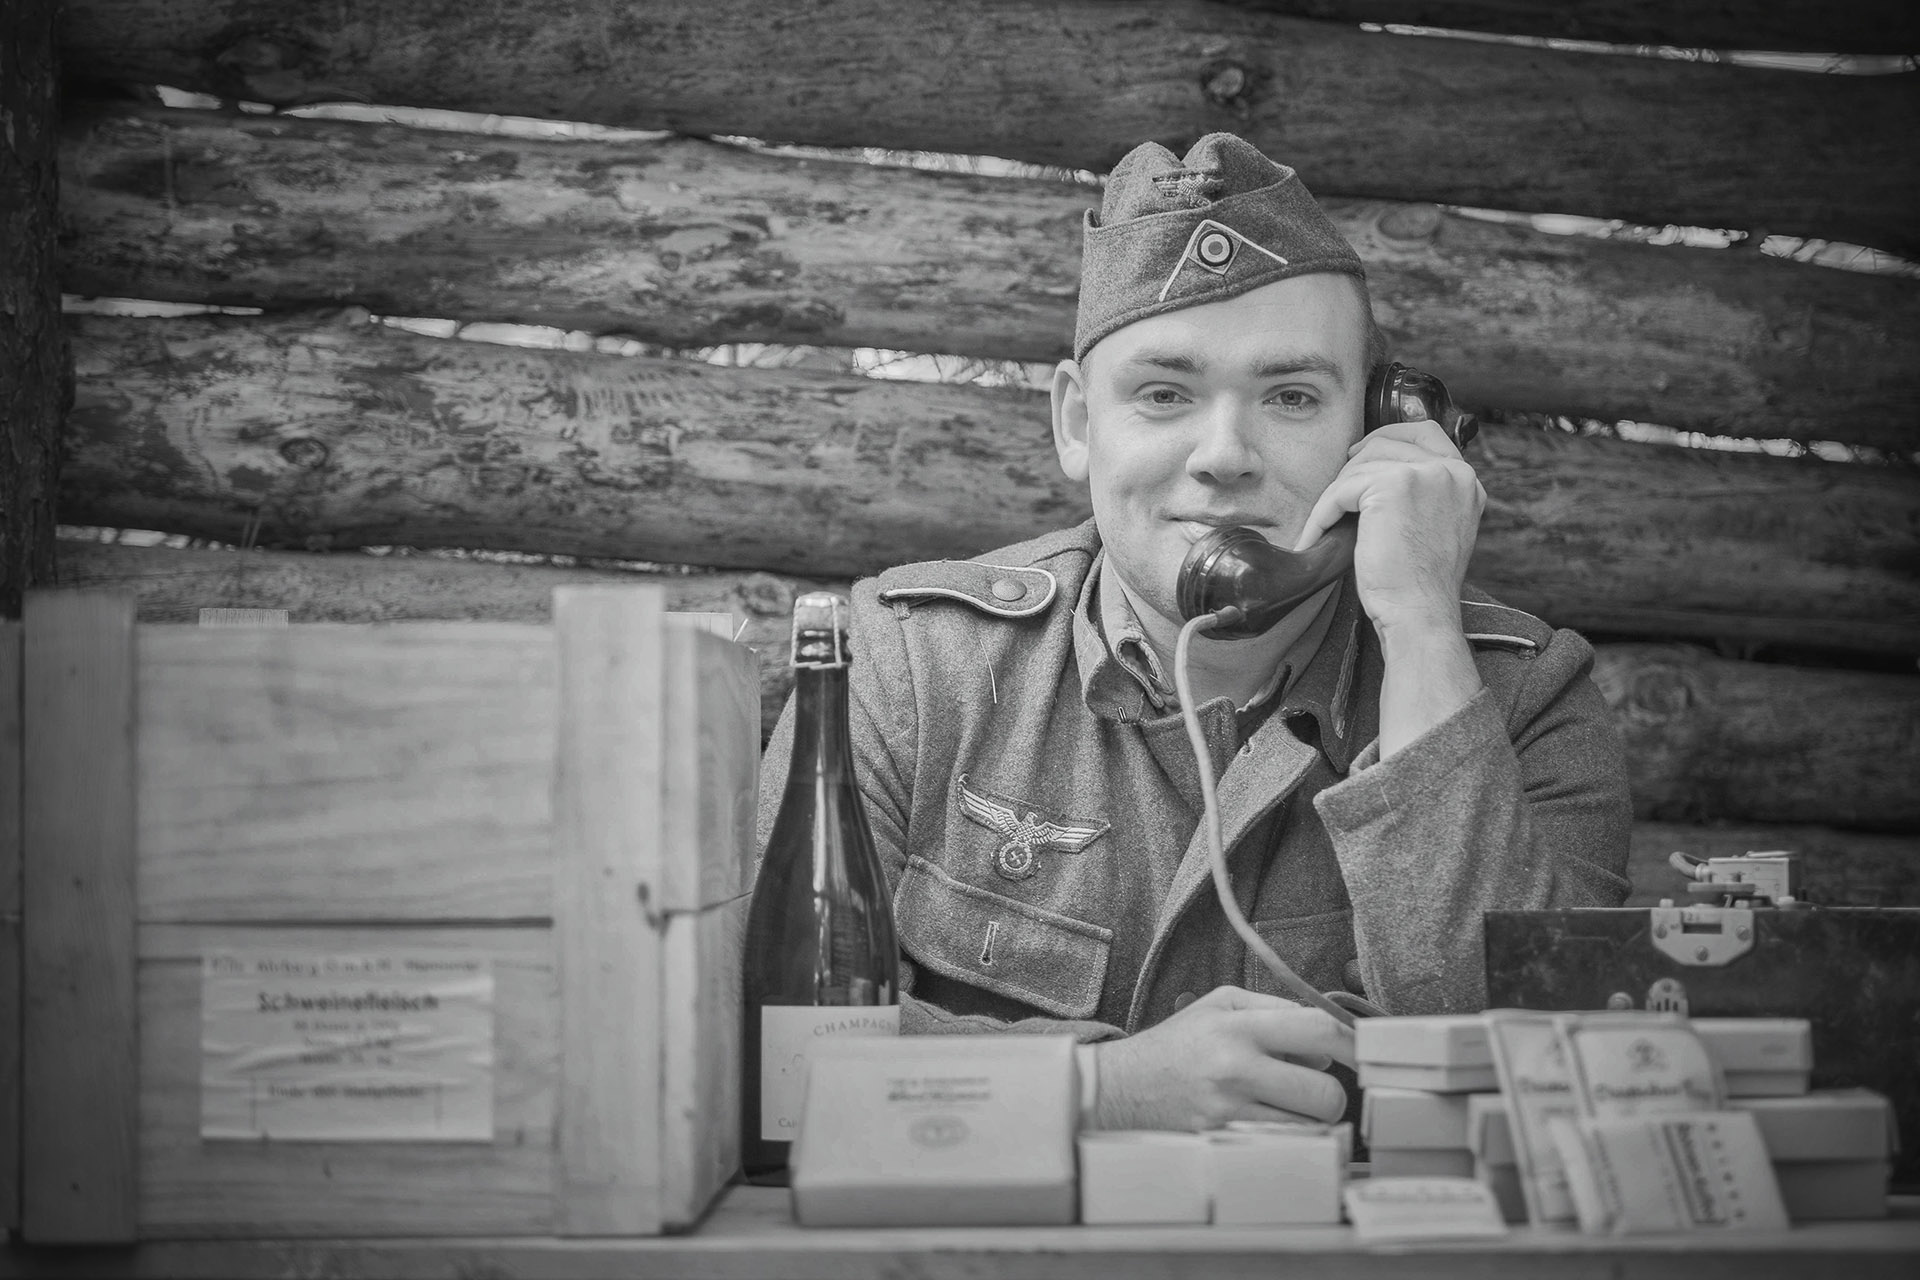 Warcopy%20contact%20(WW2%20German%20ration%20reproduction)